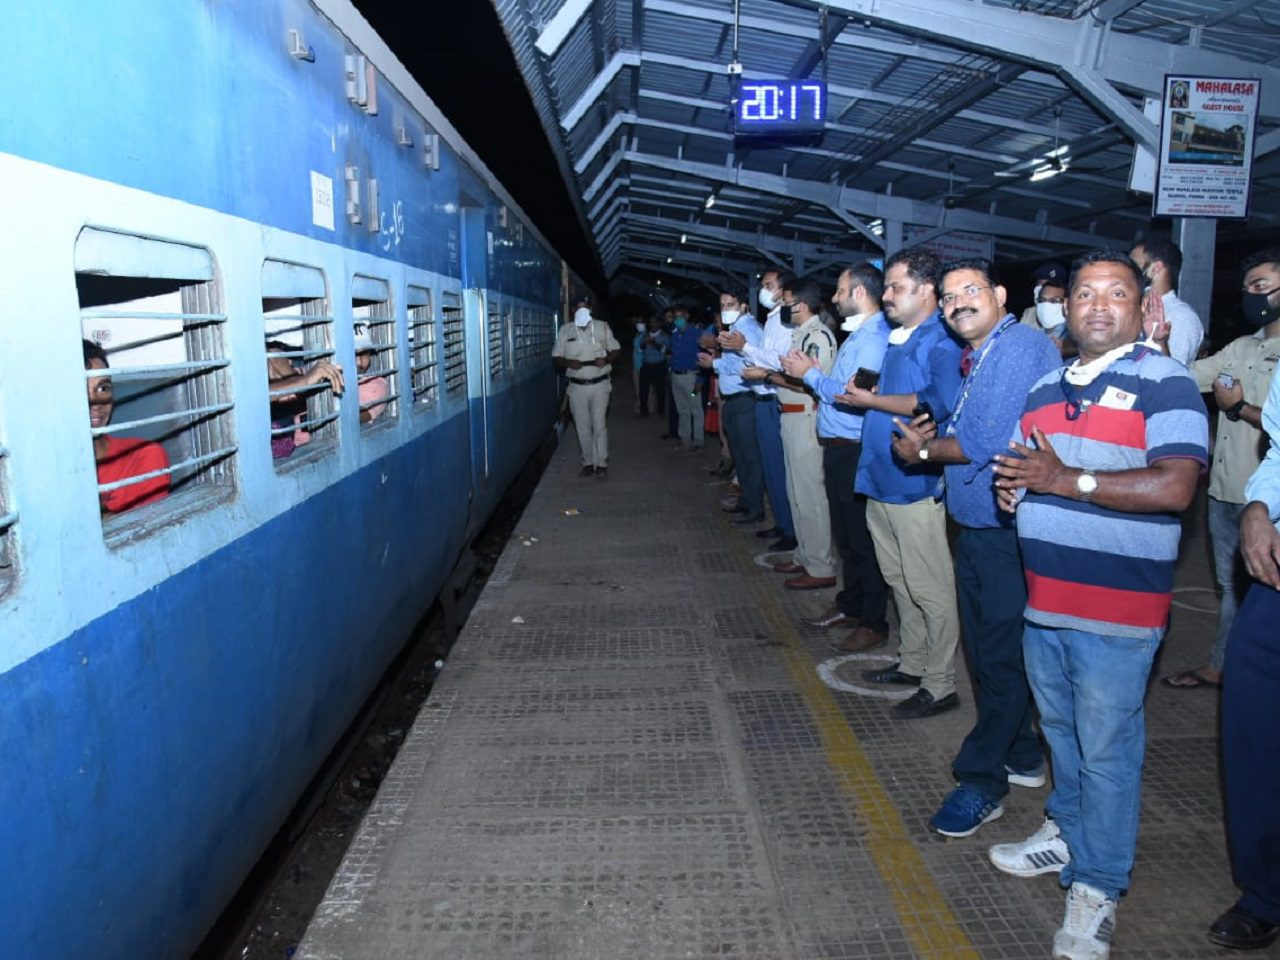 SHRAMIK EXPRESS TRAINLEAVES FOR JHARKHAND WITH 1638 PASSENGERS